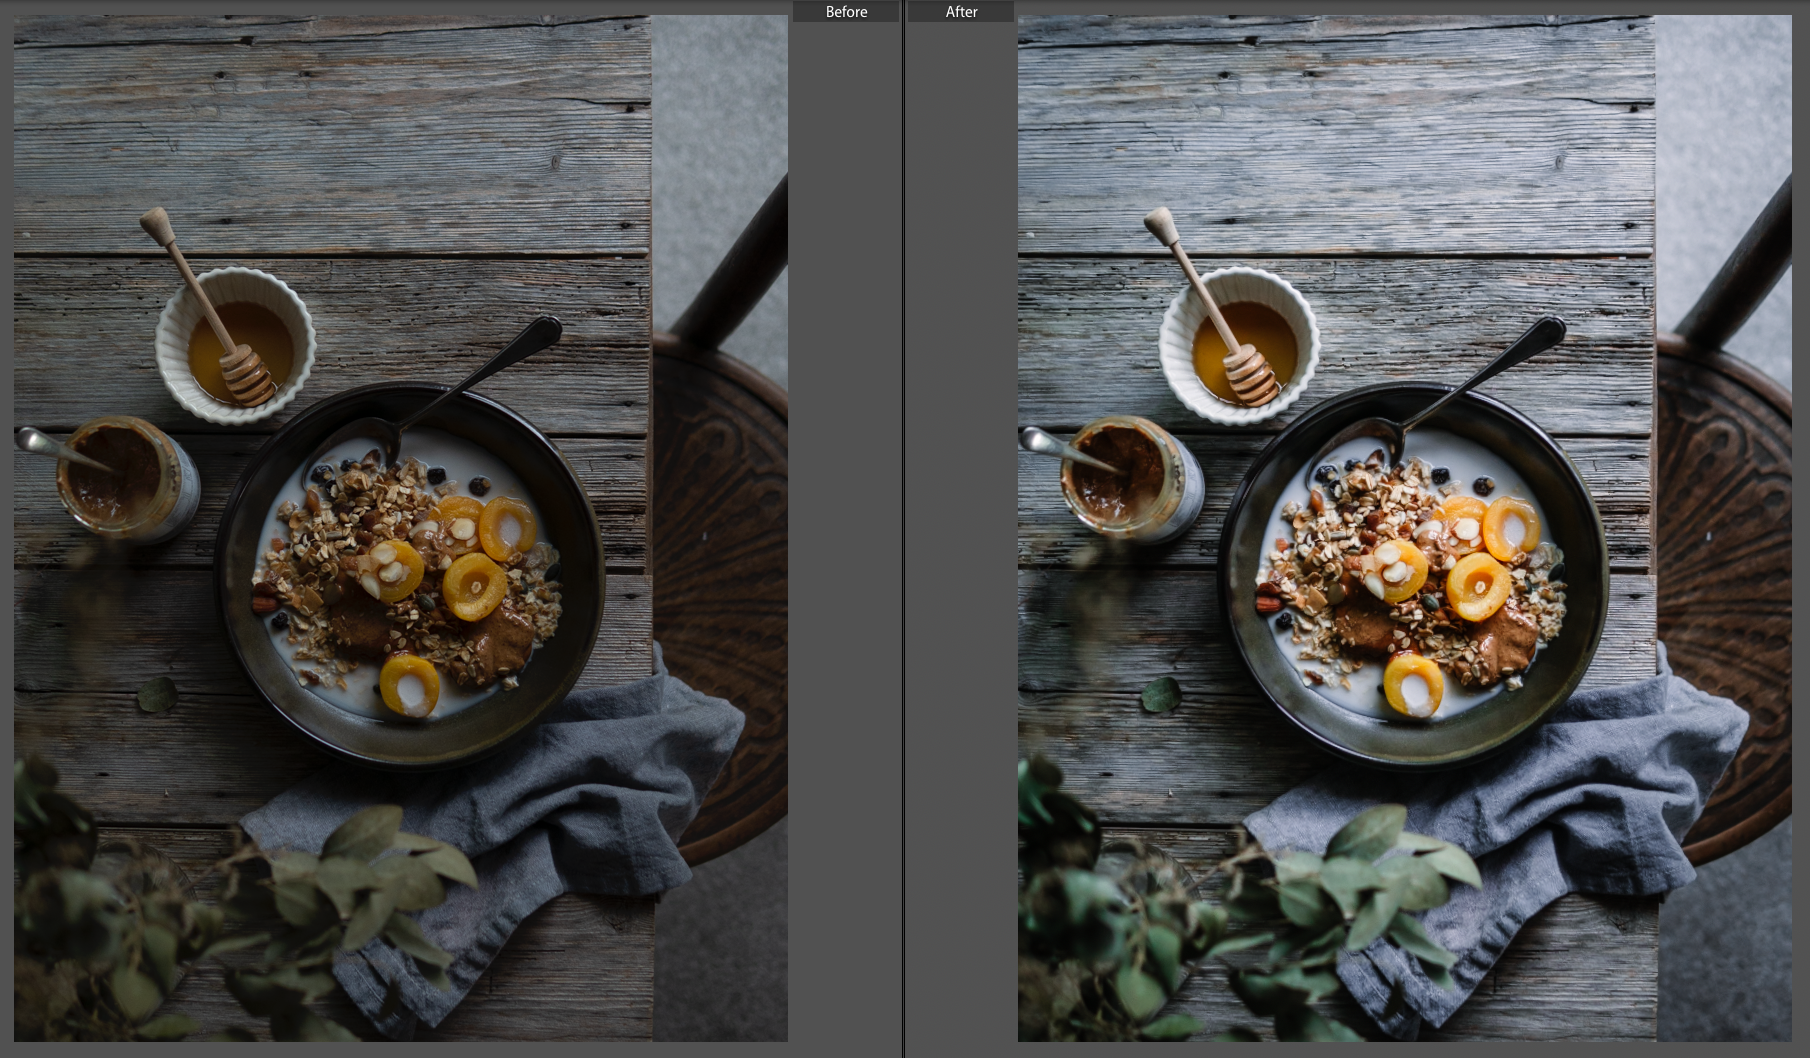 The before and after image as shot by Christall